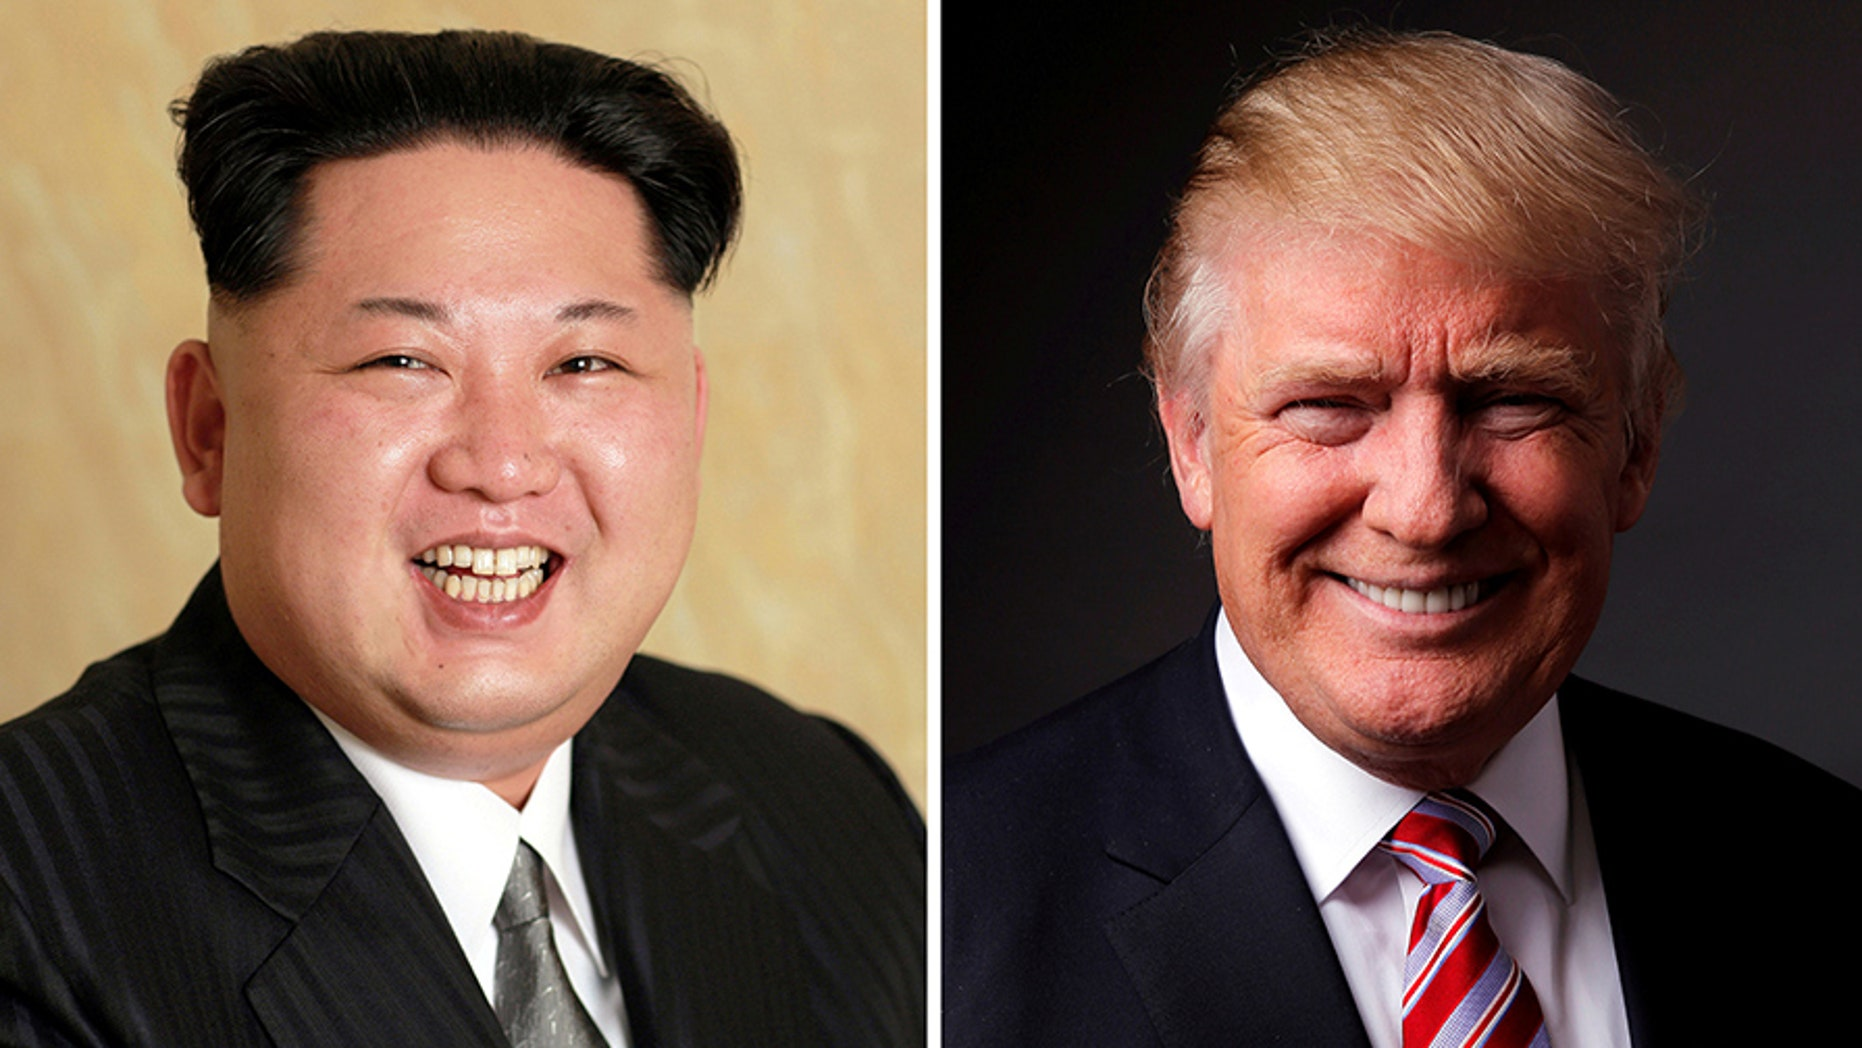 A combination photo shows a Korean Central News Agency (KCNA) handout of North Korean leader Kim Jong Un released on May 10, 2016, and Republican U.S. presidential candidate Donald Trump posing for a photo after an interview with Reuters in his office in Trump Tower, in the Manhattan borough of New York City, U.S., May 17, 2016.